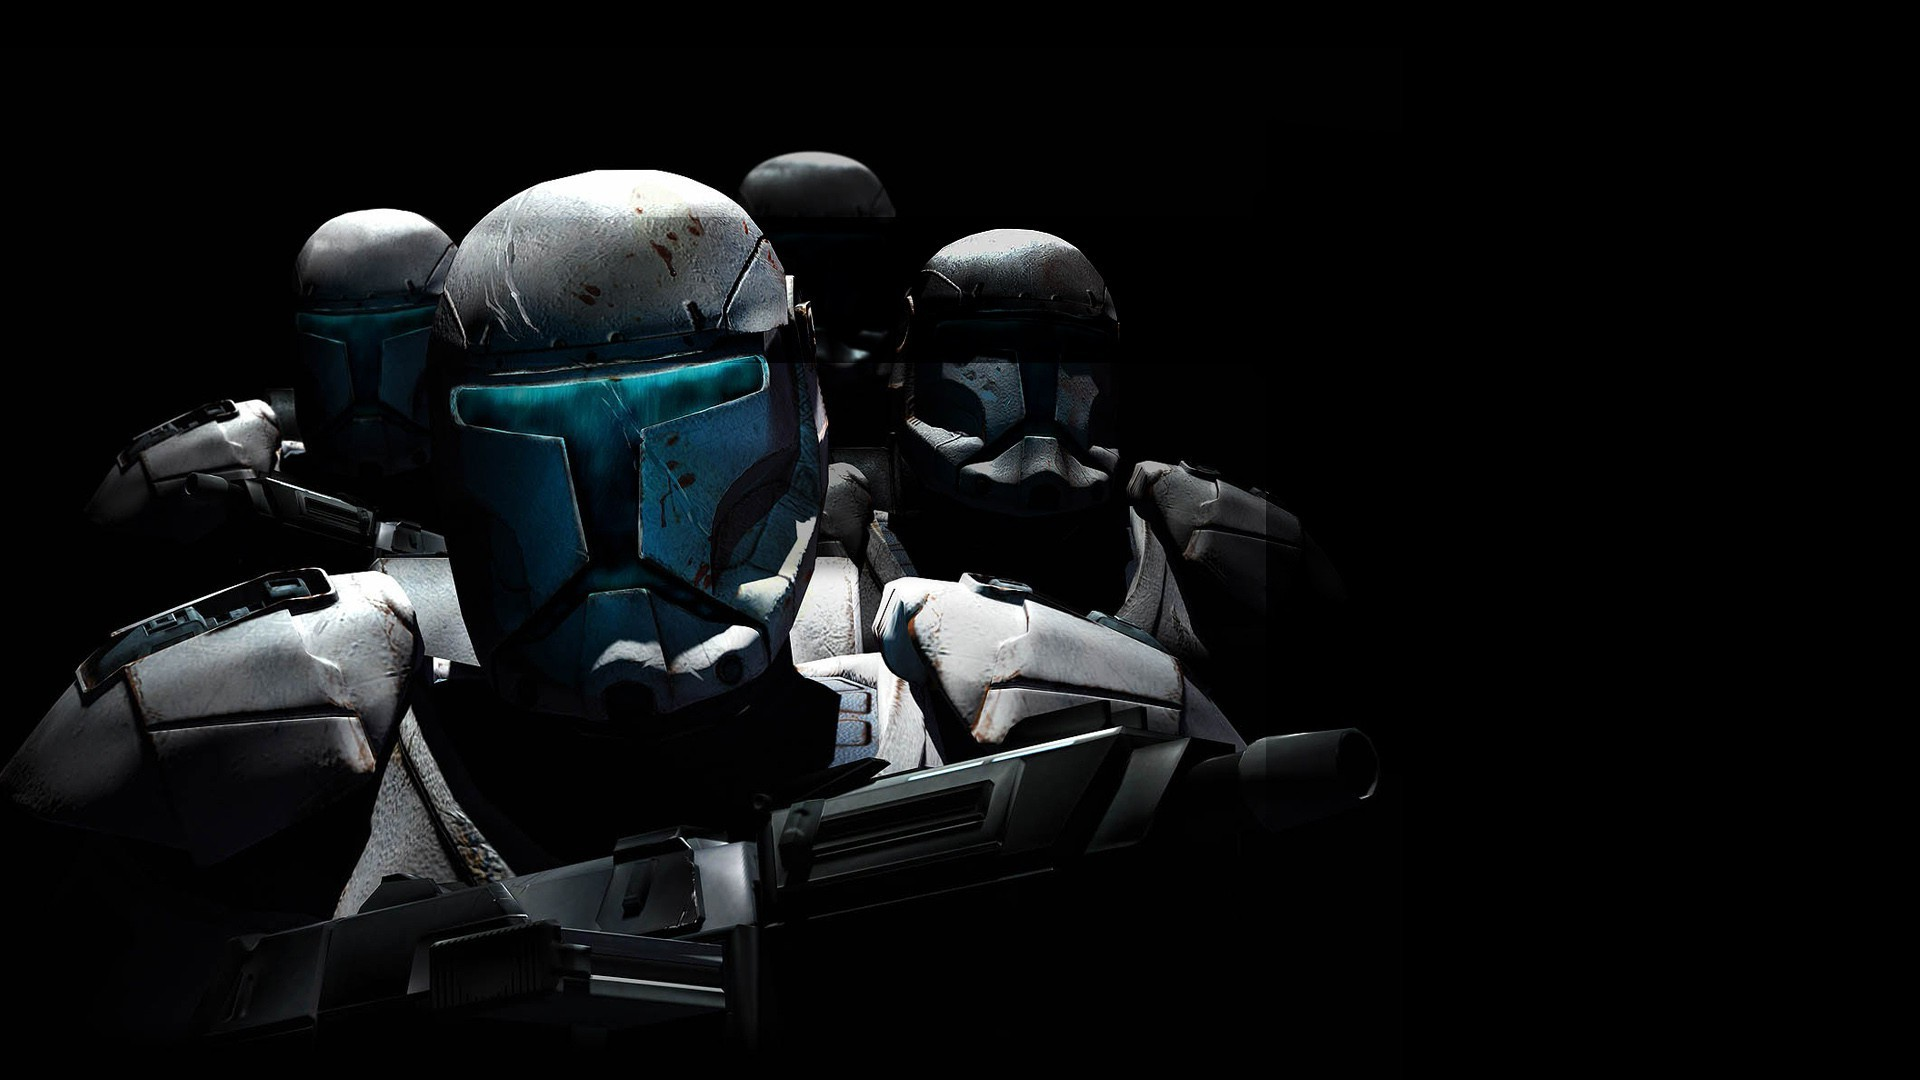 Clone Trooper Wallpaper Download Free Full Hd Backgrounds For